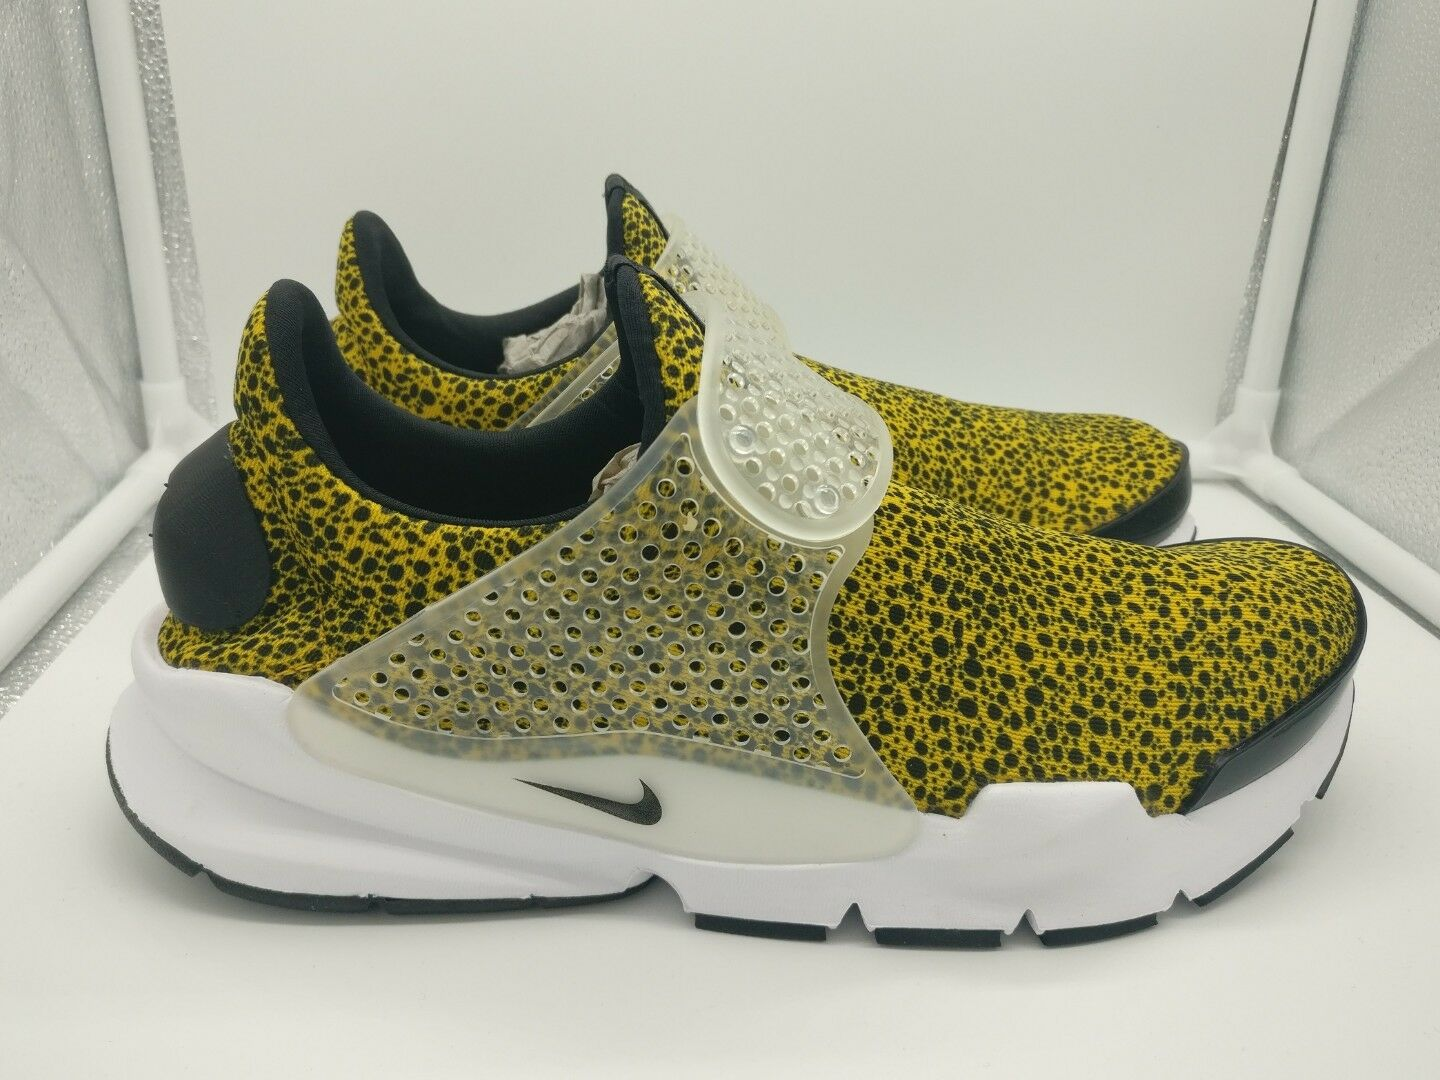 Nike University Sock Dart QS9 University Nike Gold noir blanc 942198700 613fea